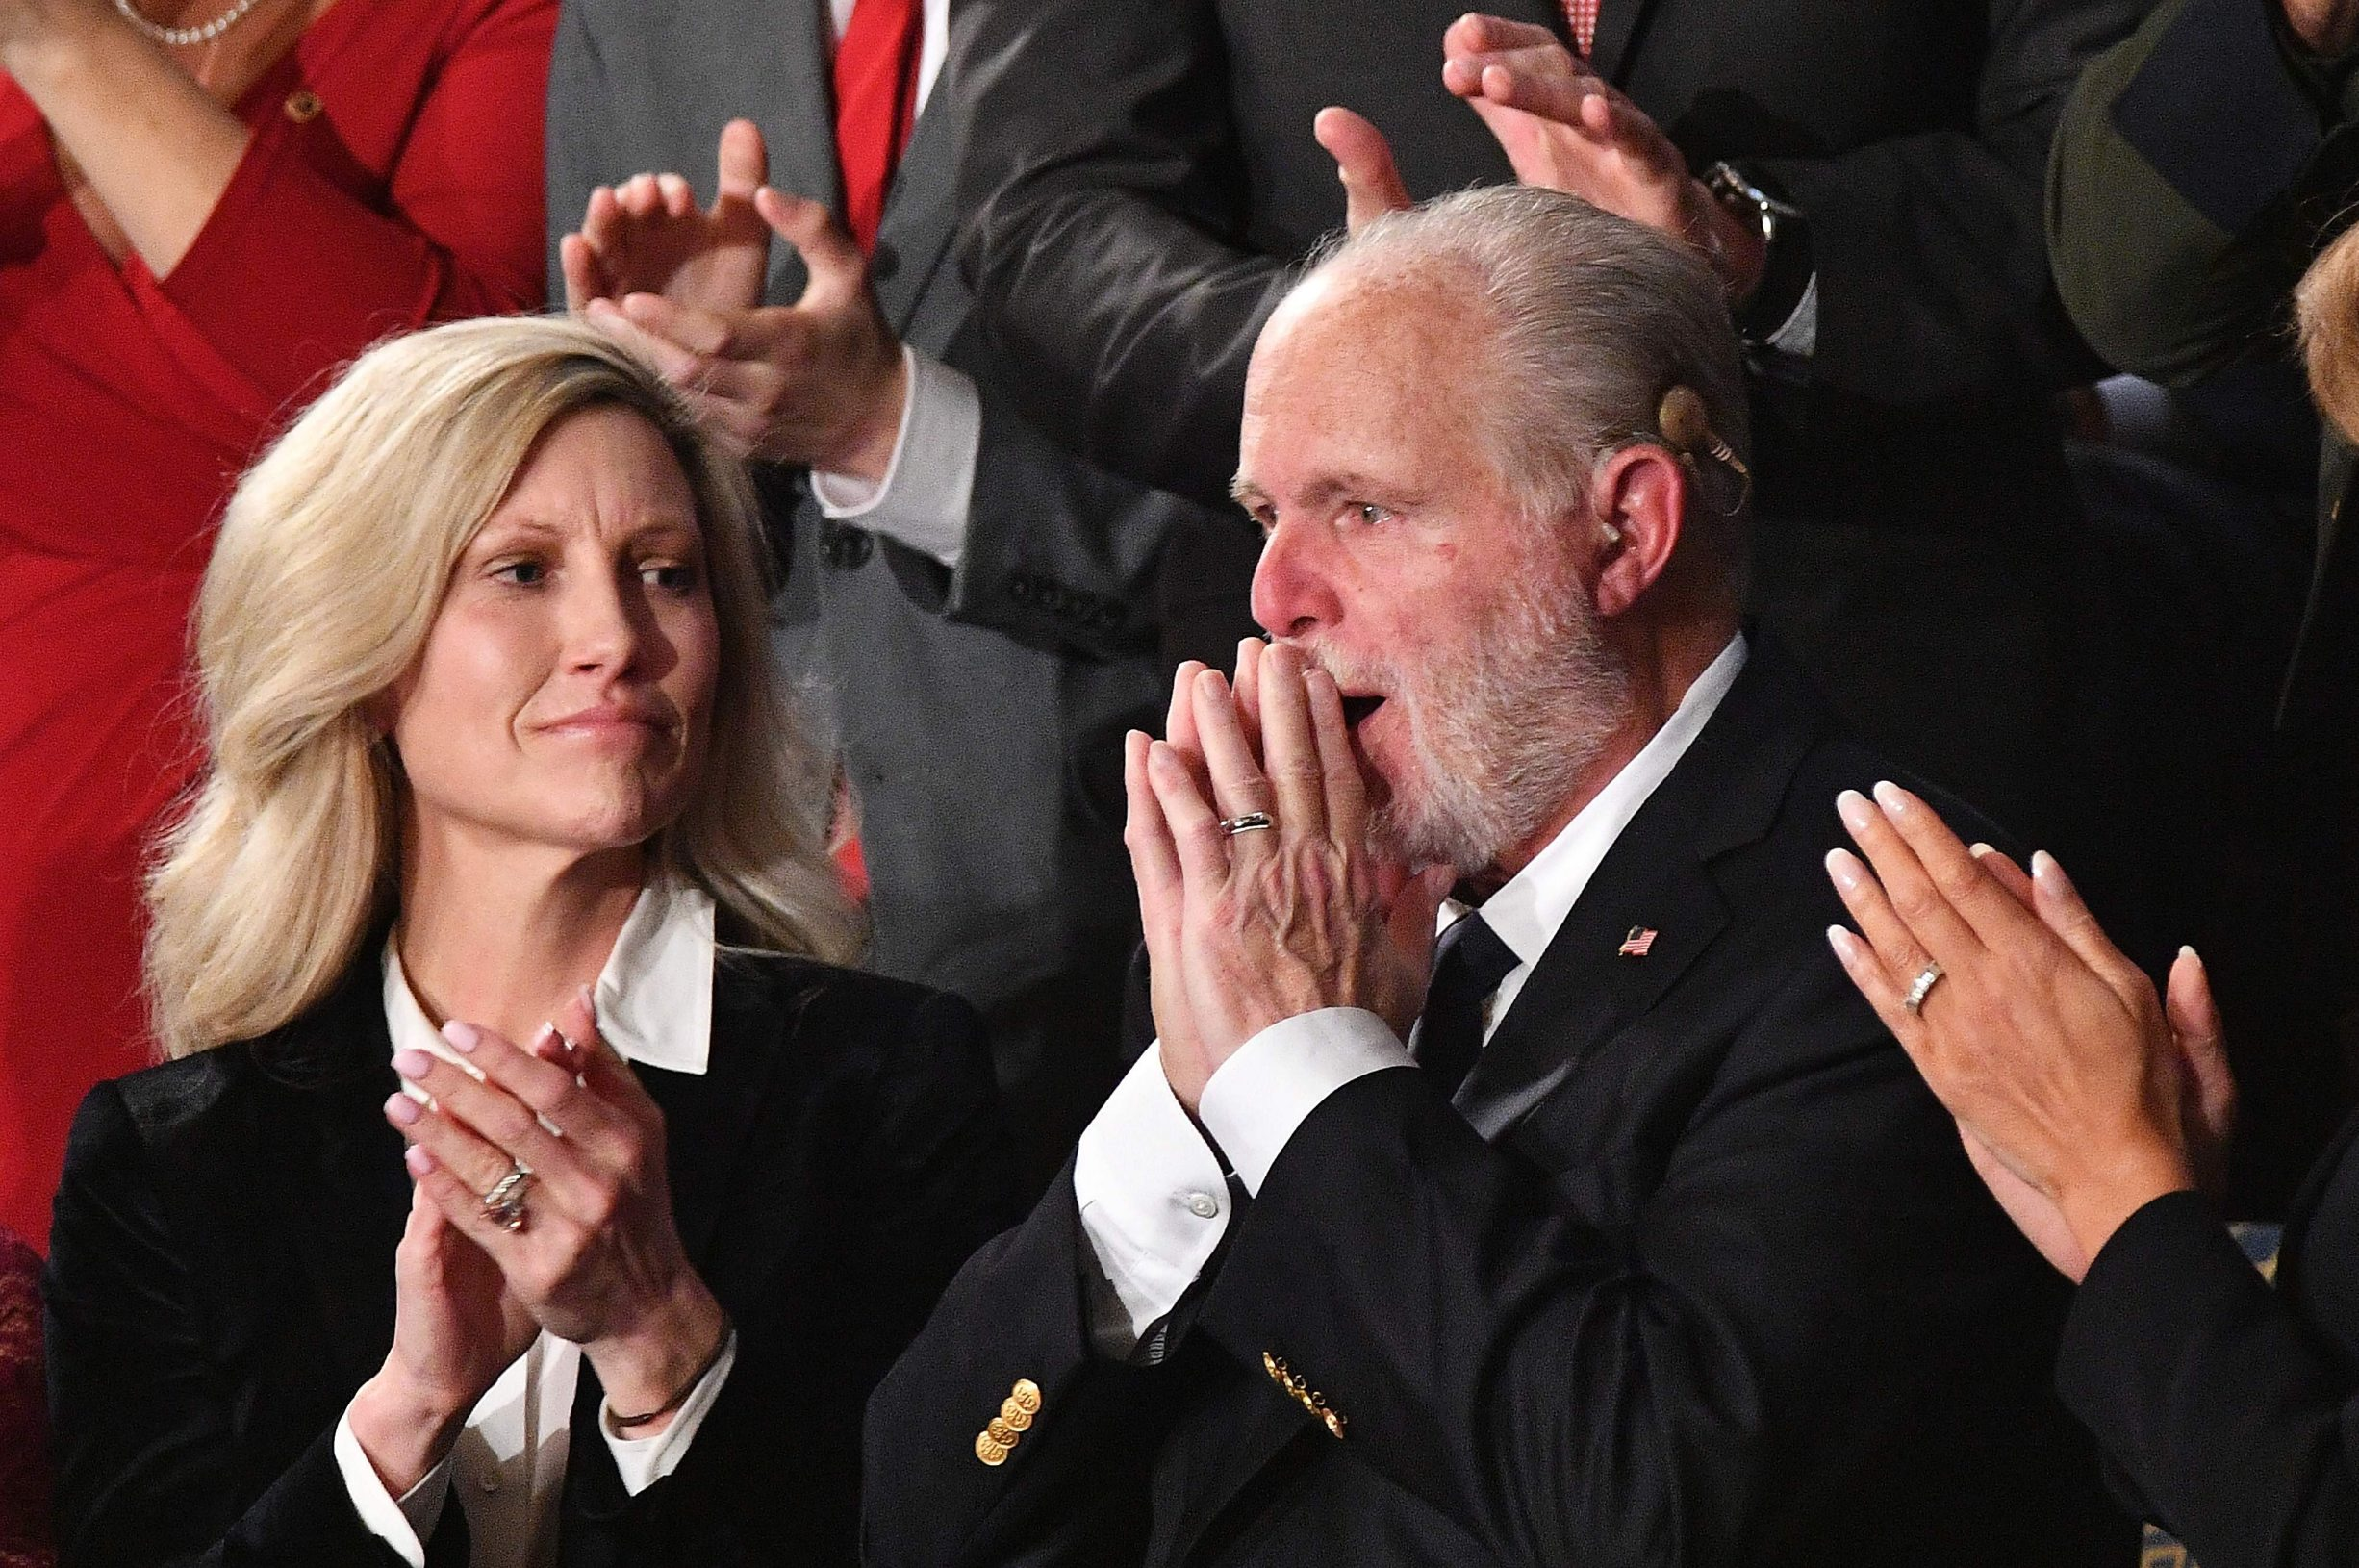 Radio personality Rush Limbaugh gestures after being awarded the Medal of Freedom by US President Donald Trump as he delivers the State of the Union address at the US Capitol in Washington, DC, on February 4, 2020. (Photo by MANDEL NGAN / AFP)